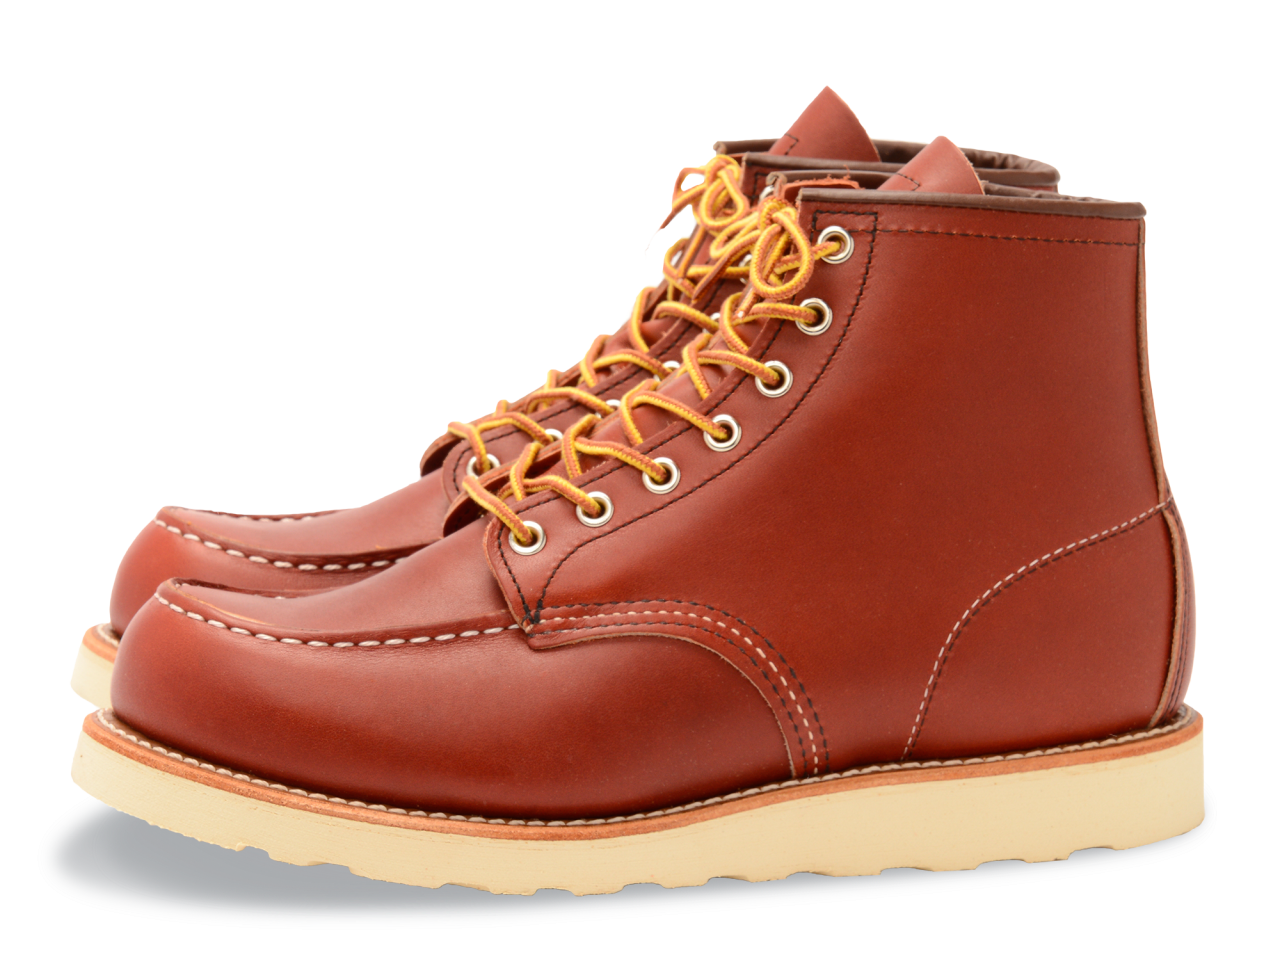 Red Wing 8131 Moc Toe